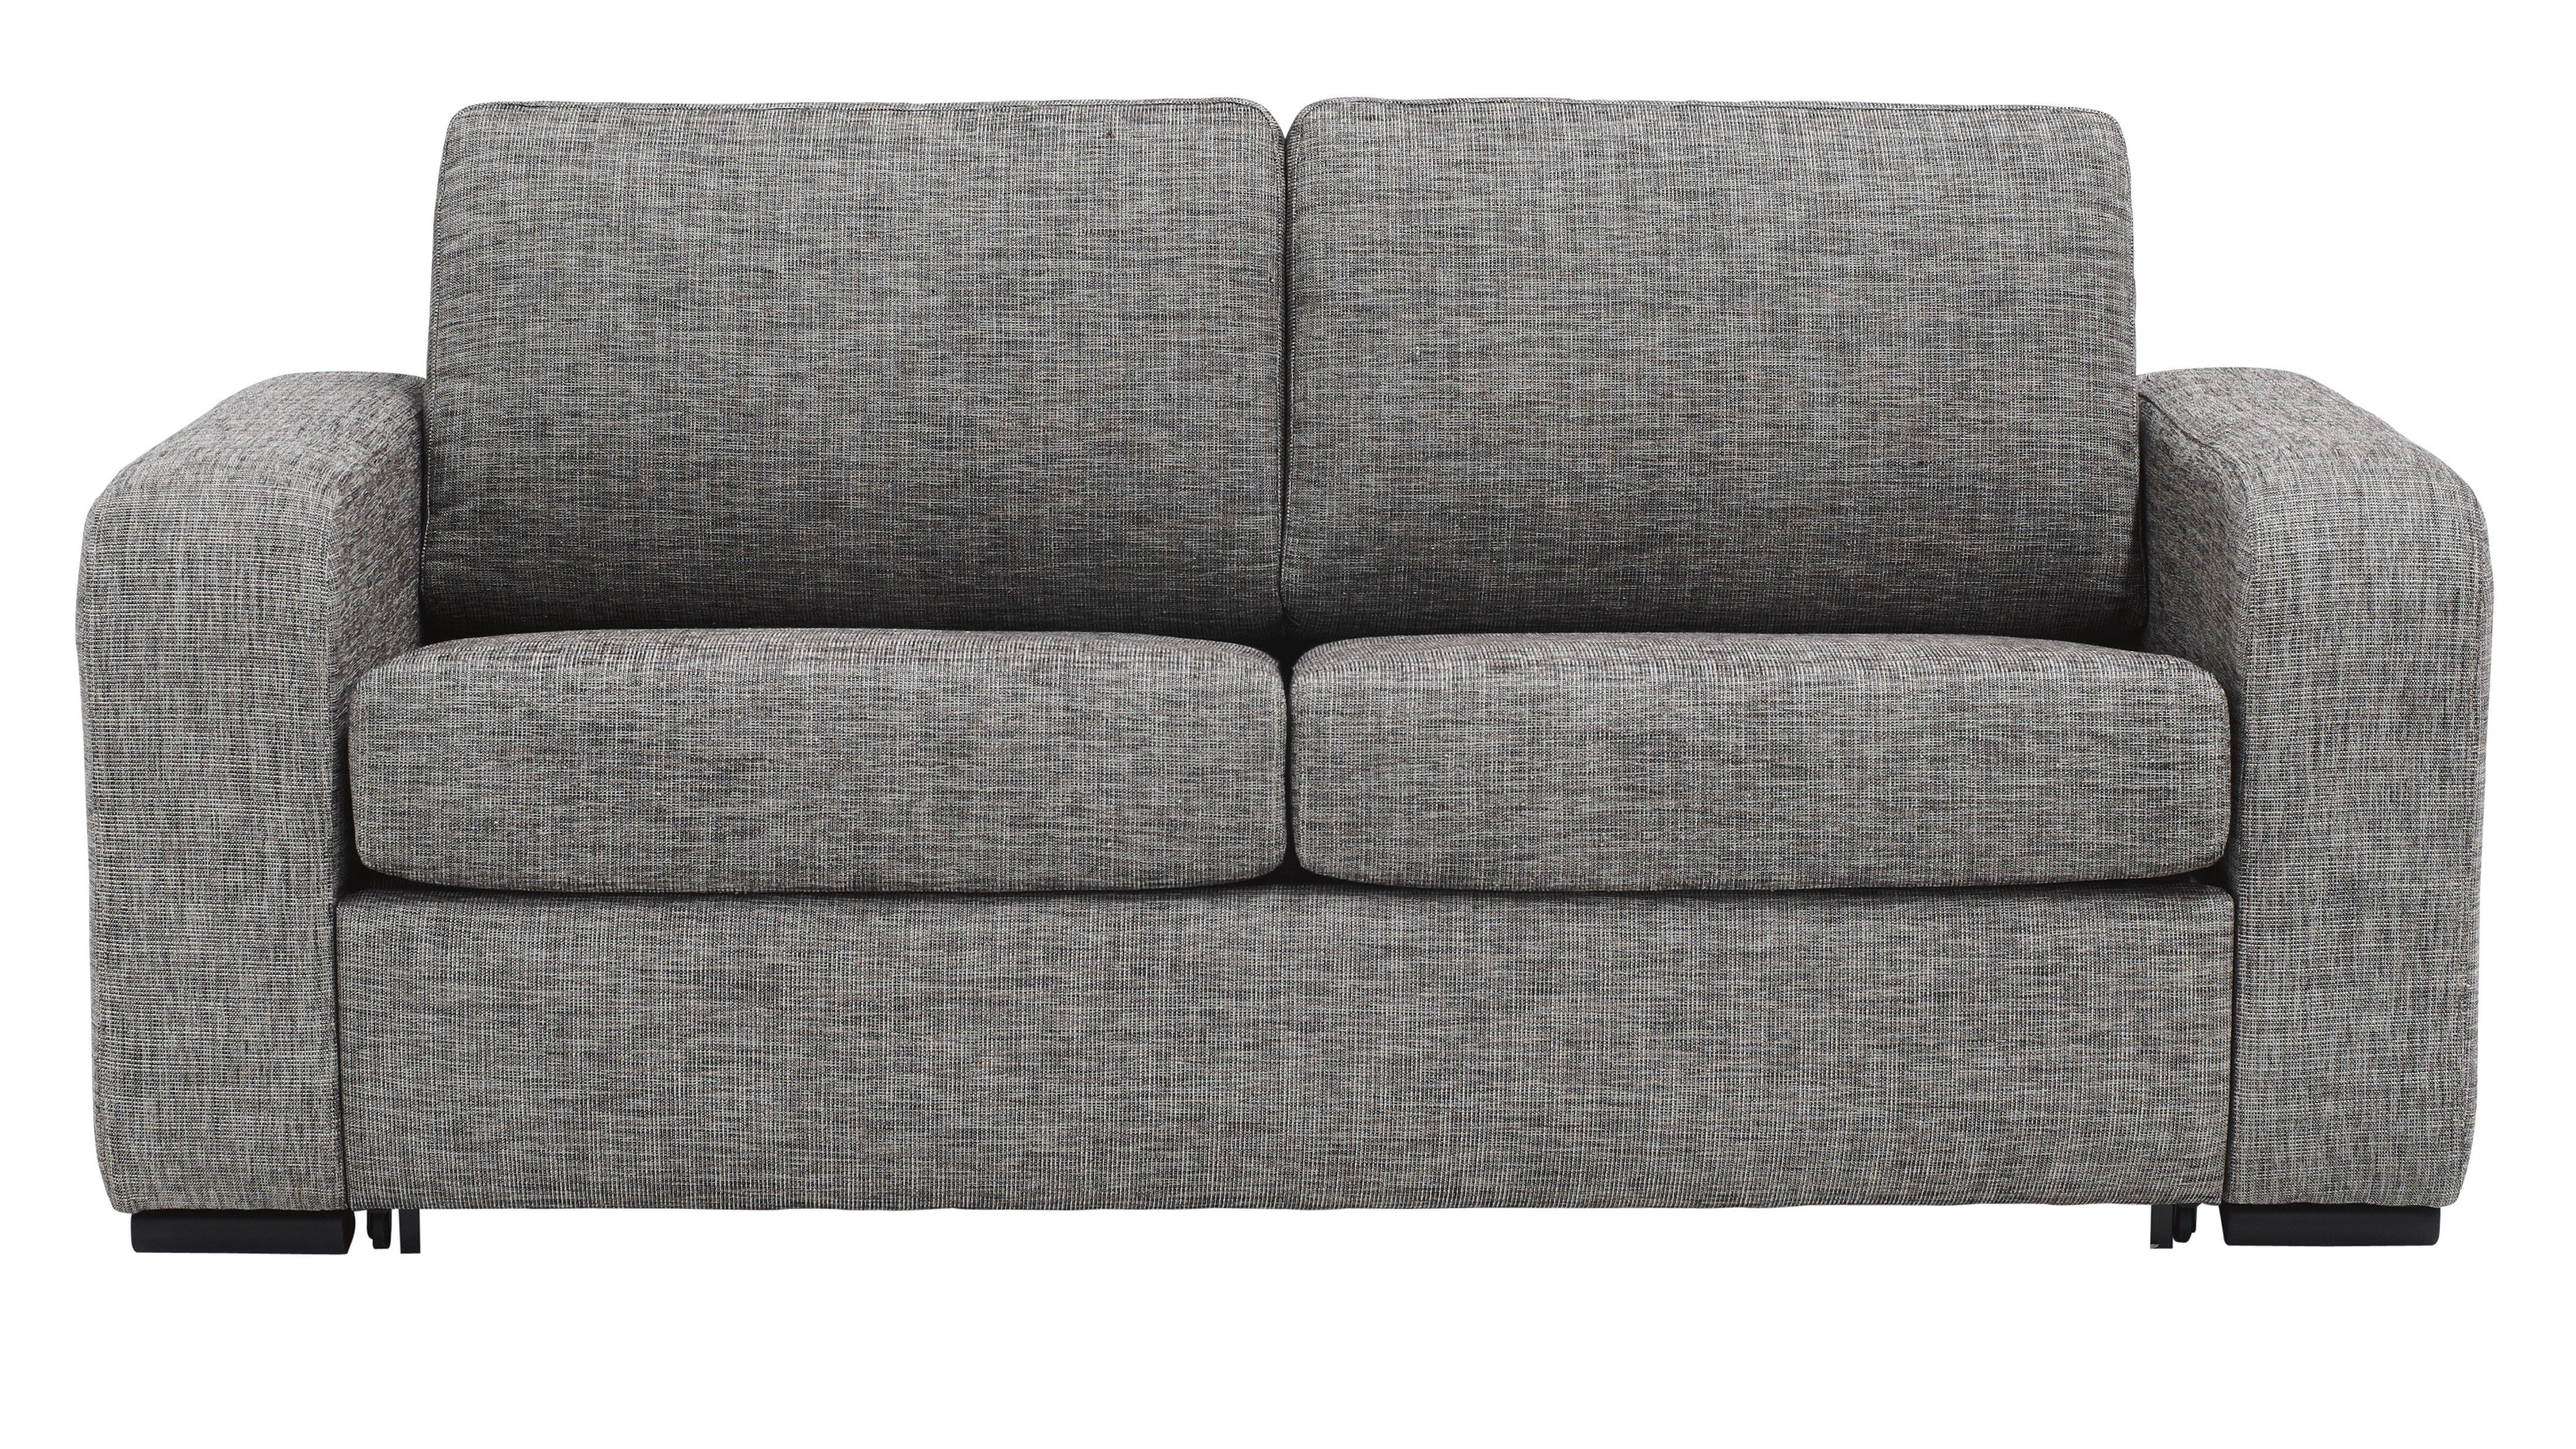 Alice Sofa Bed Small Double Sofa Bed Fabric Sofa Bed Double Sofa Bed